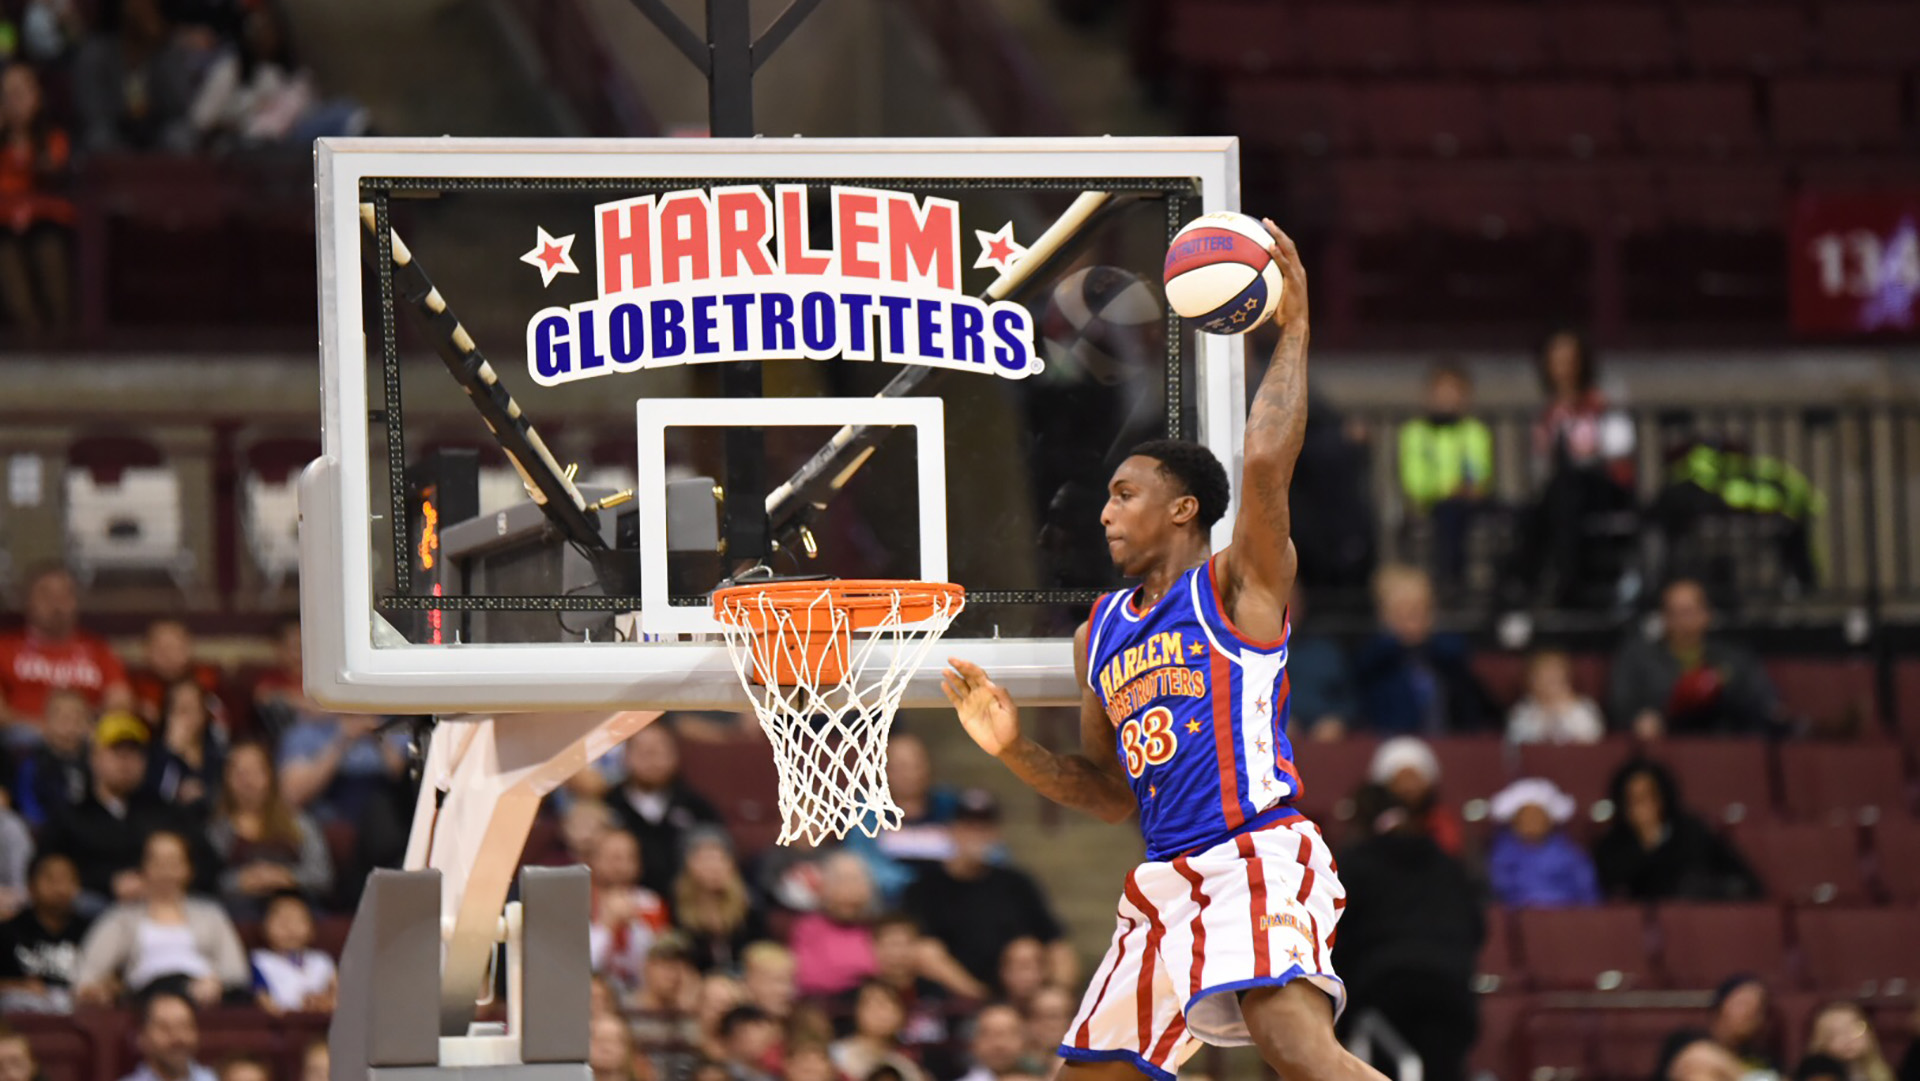 Globetrotters plan October return to Amarillo; tickets on sale Friday